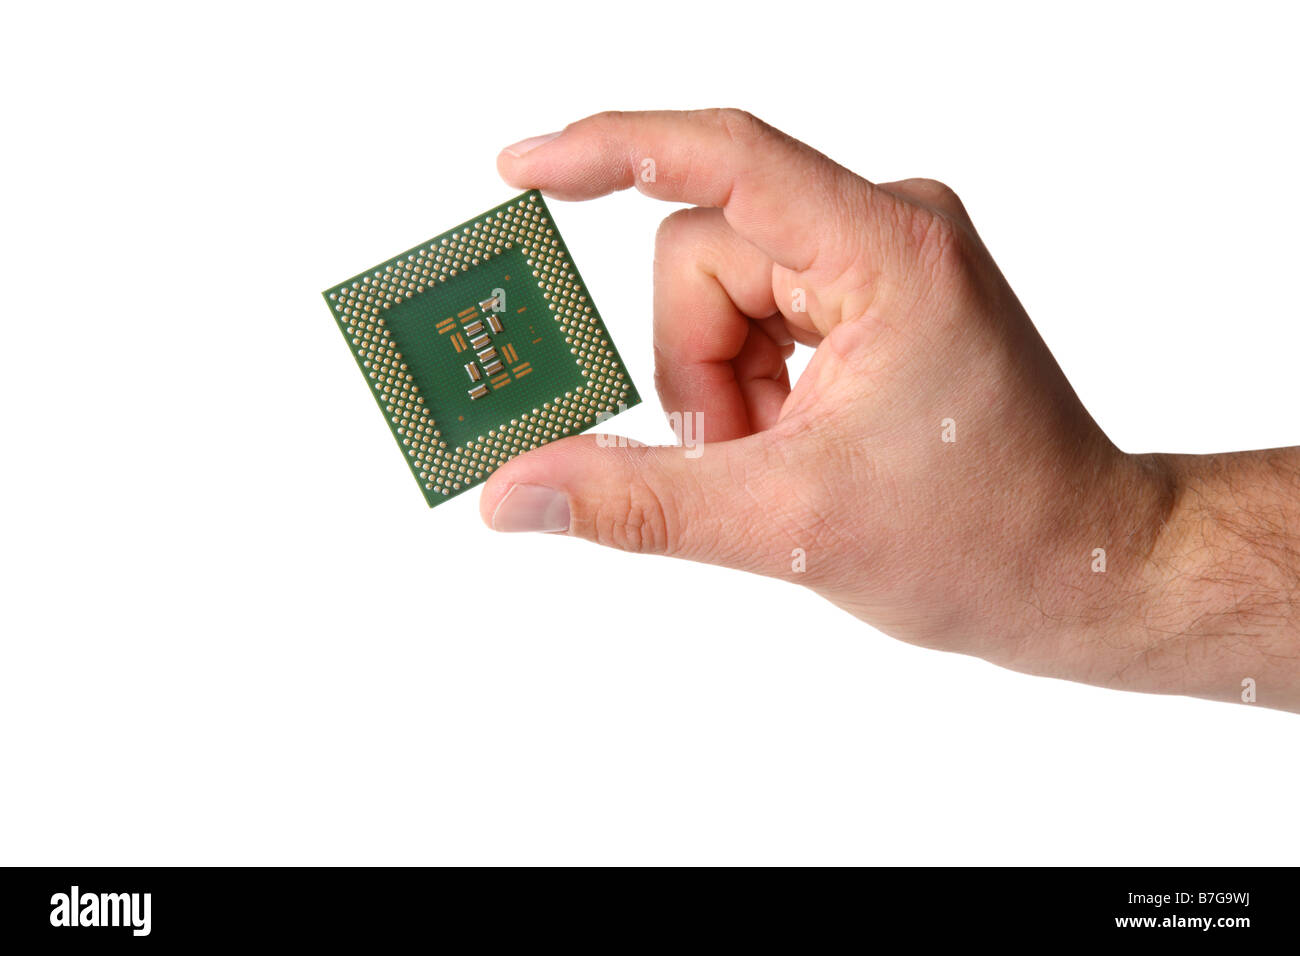 Hand holds computer CPU processor chip cut out on white background - Stock Image